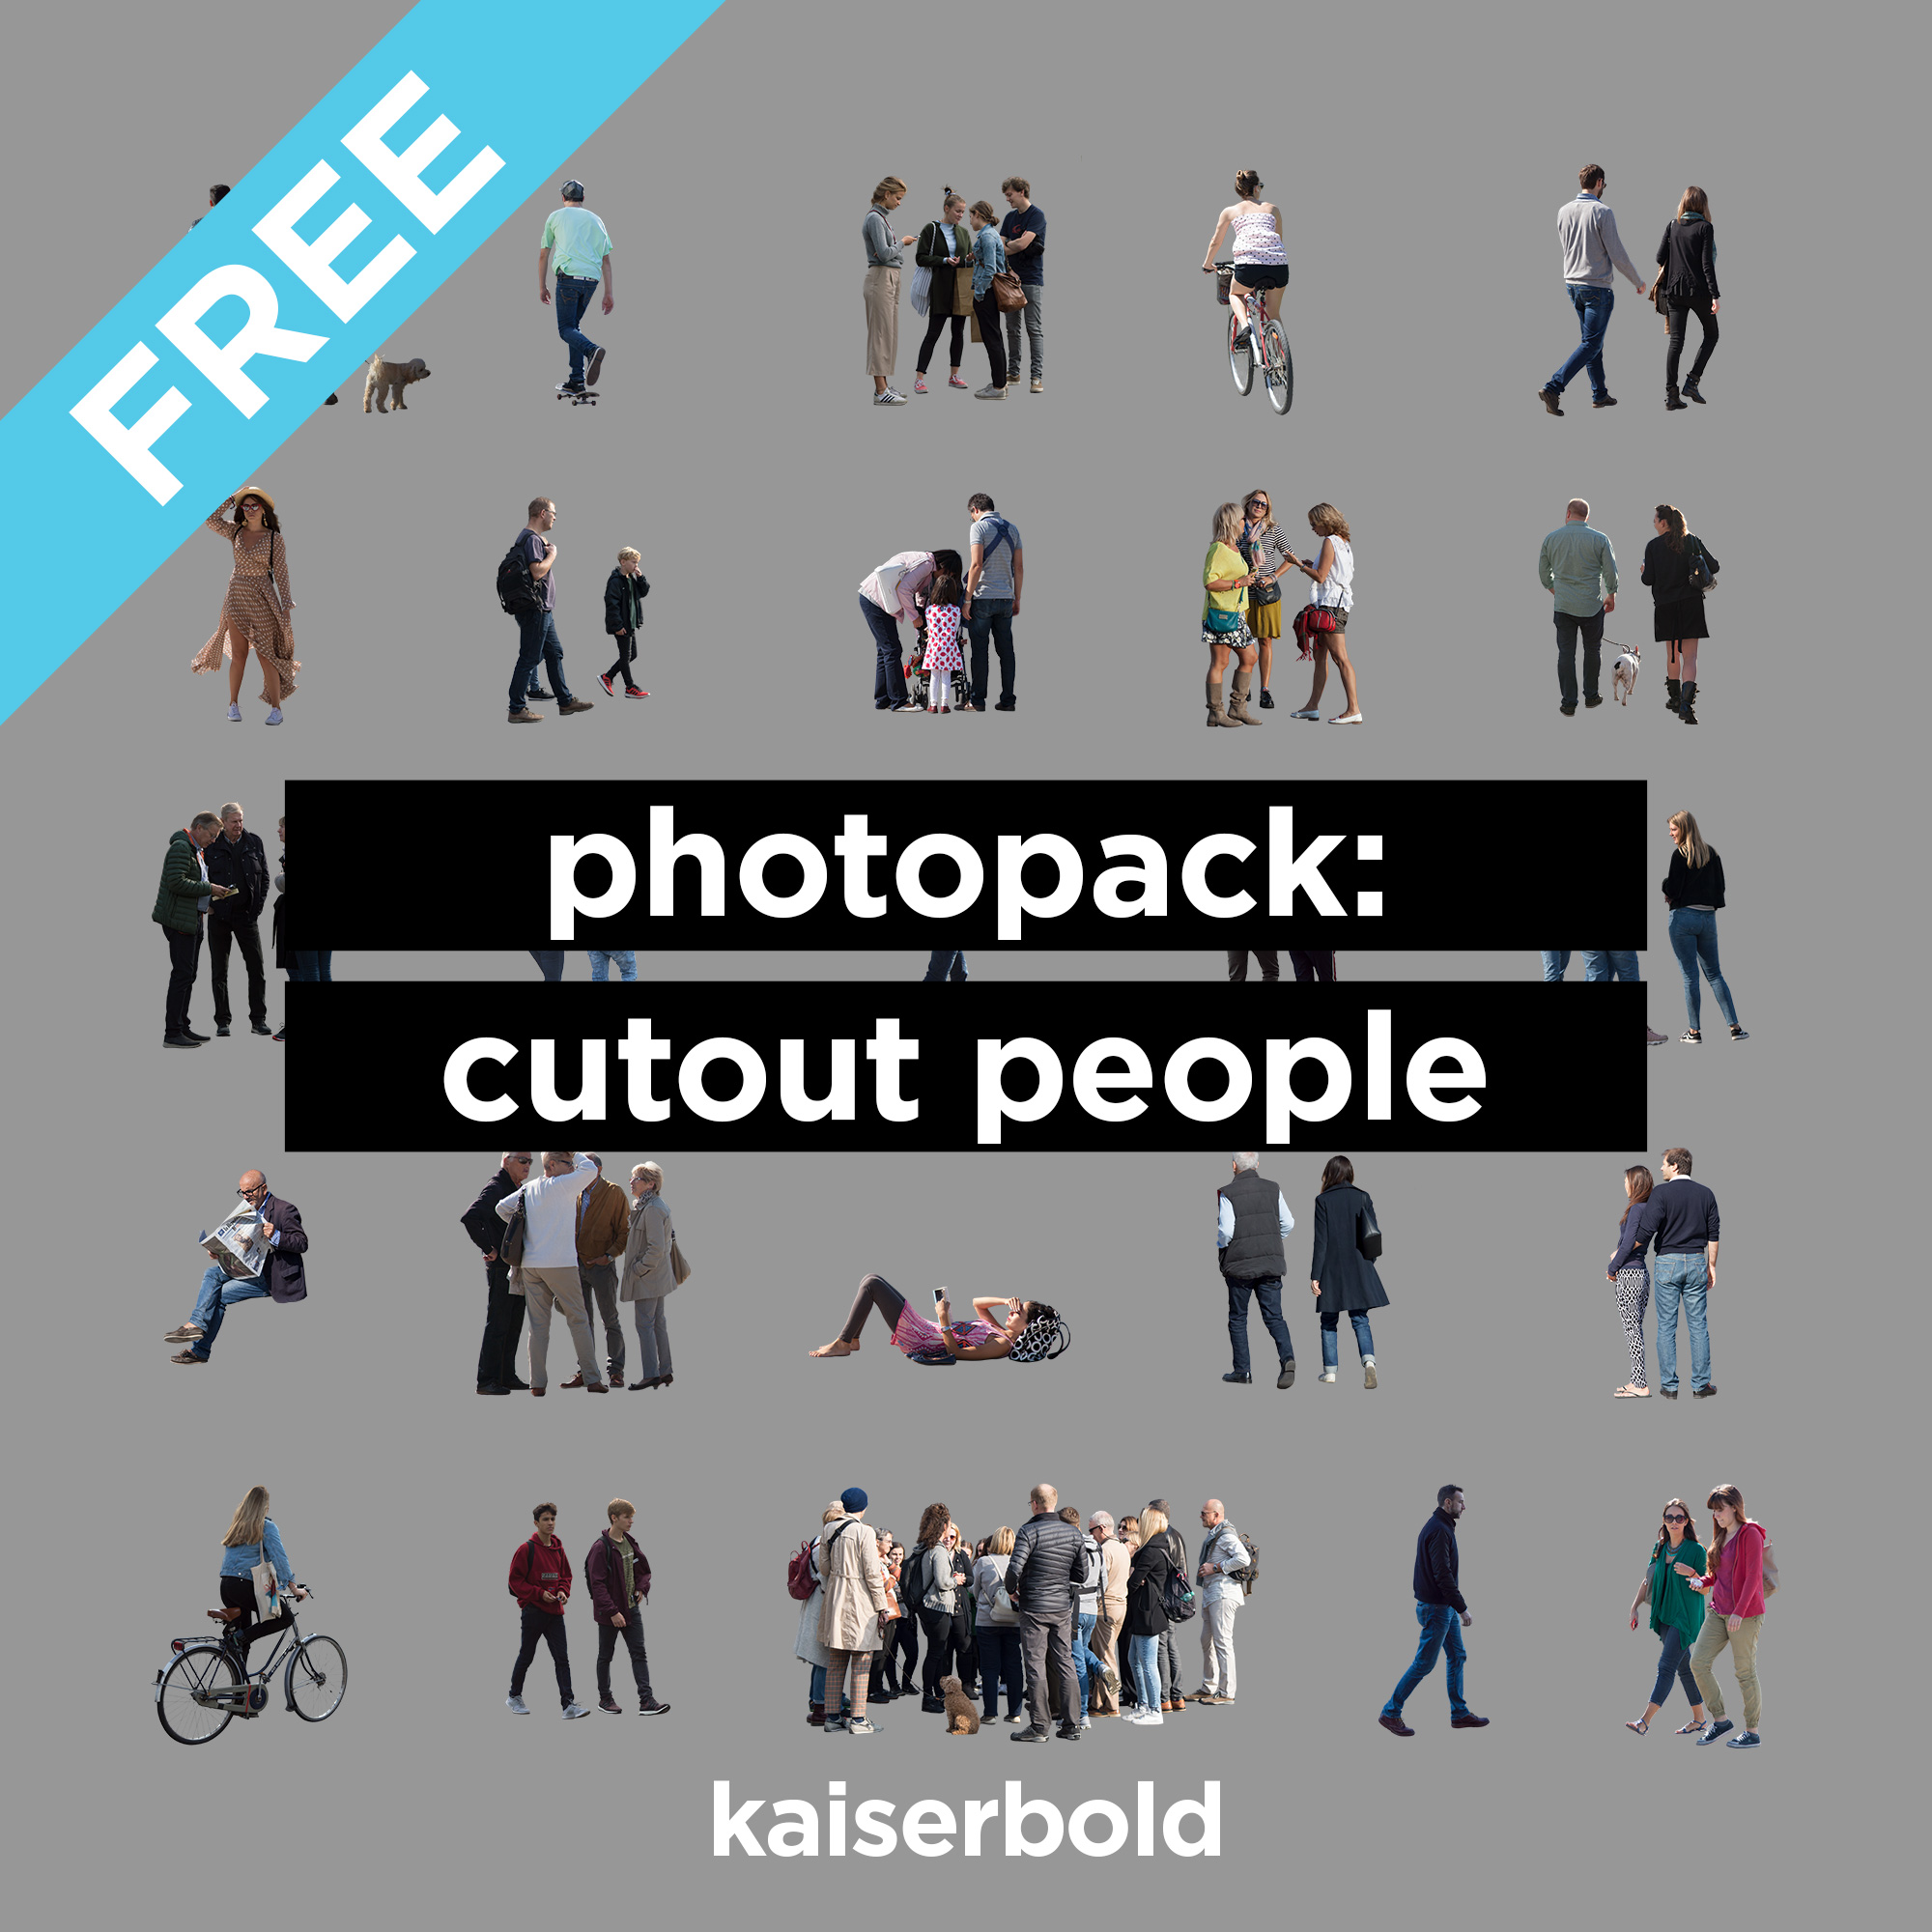 kaiserbold free cutout people 2019